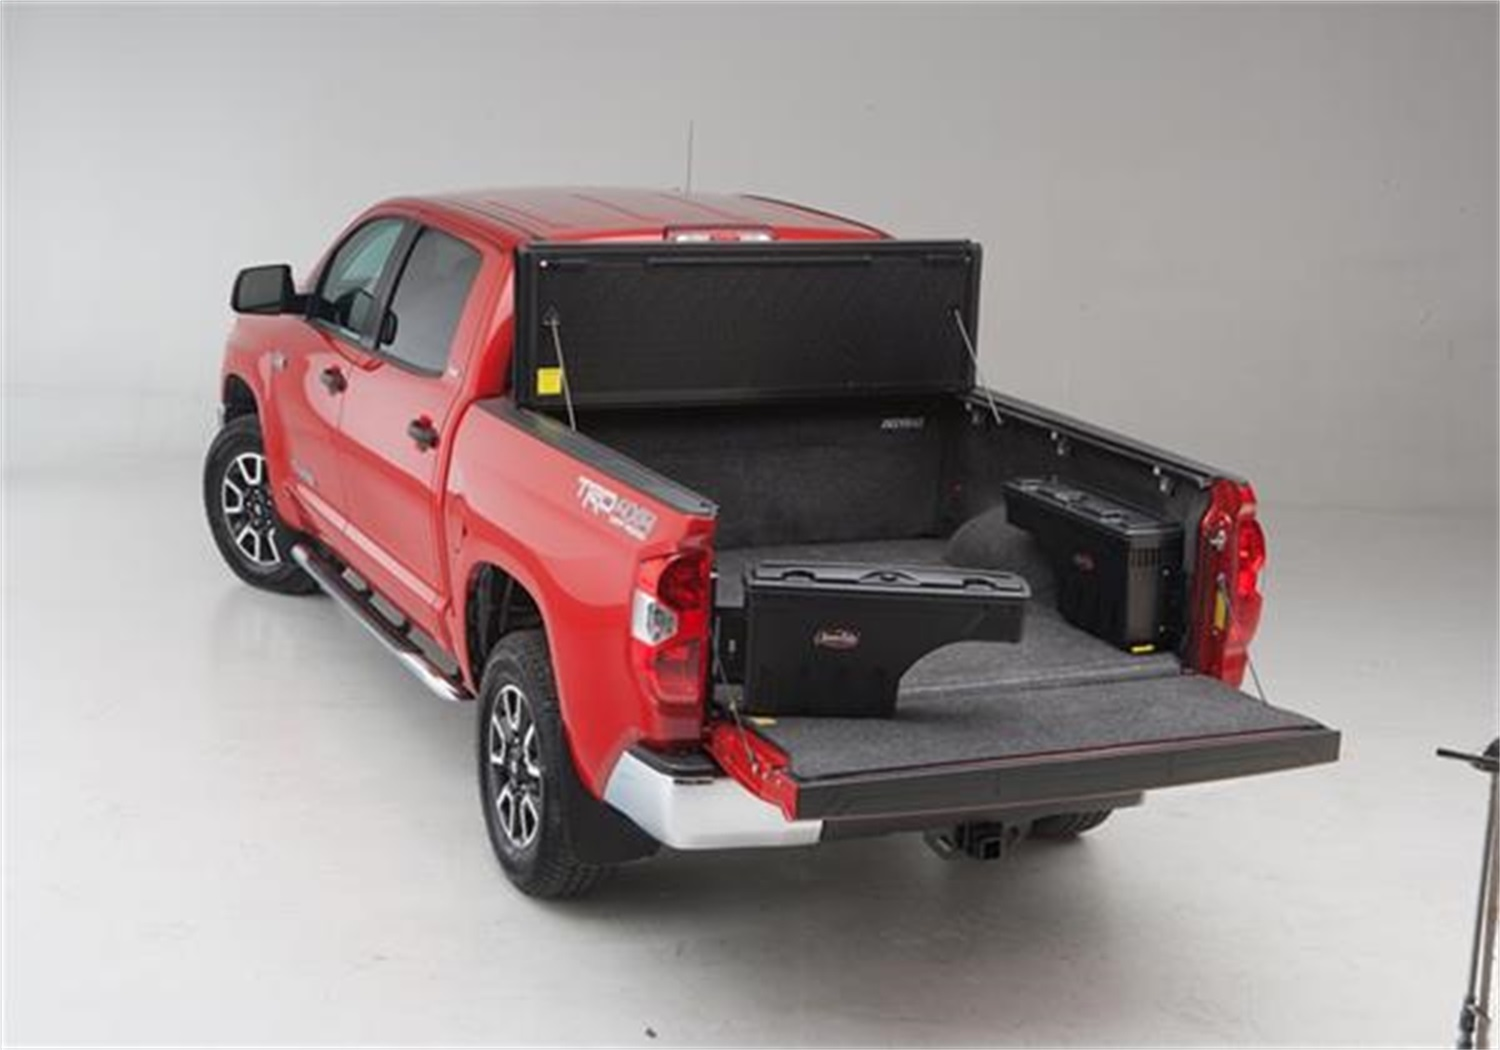 Undercover tonneau sc200d swing case truck bed storage box - Pickup bed storage boxes ...